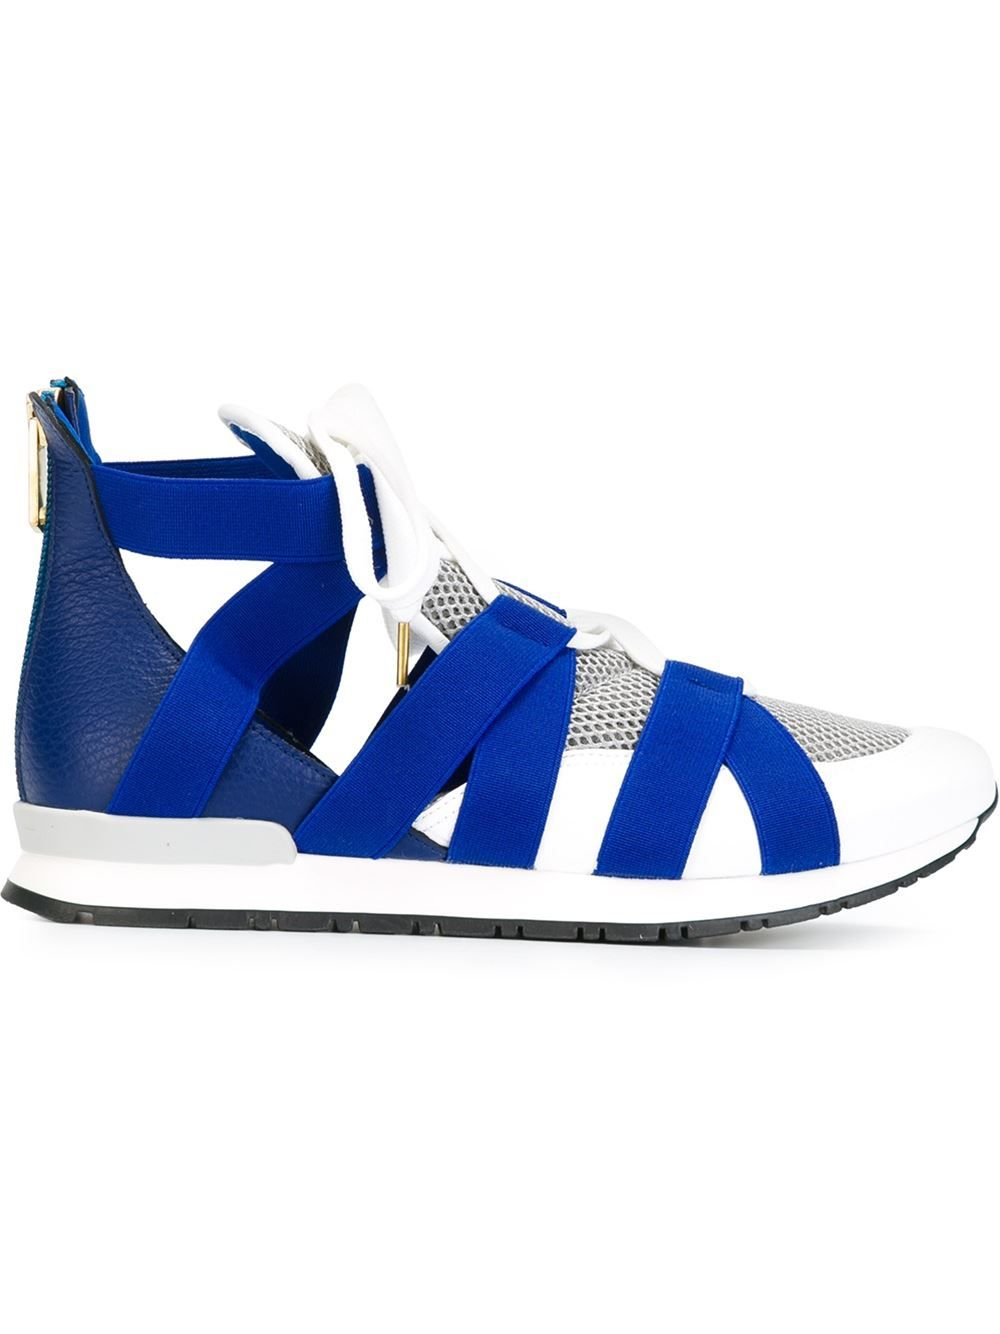 FOOTWEAR - High-tops & sneakers Vionnet Fake Online Latest For Sale Buy Cheap Latest y2G1Uy0